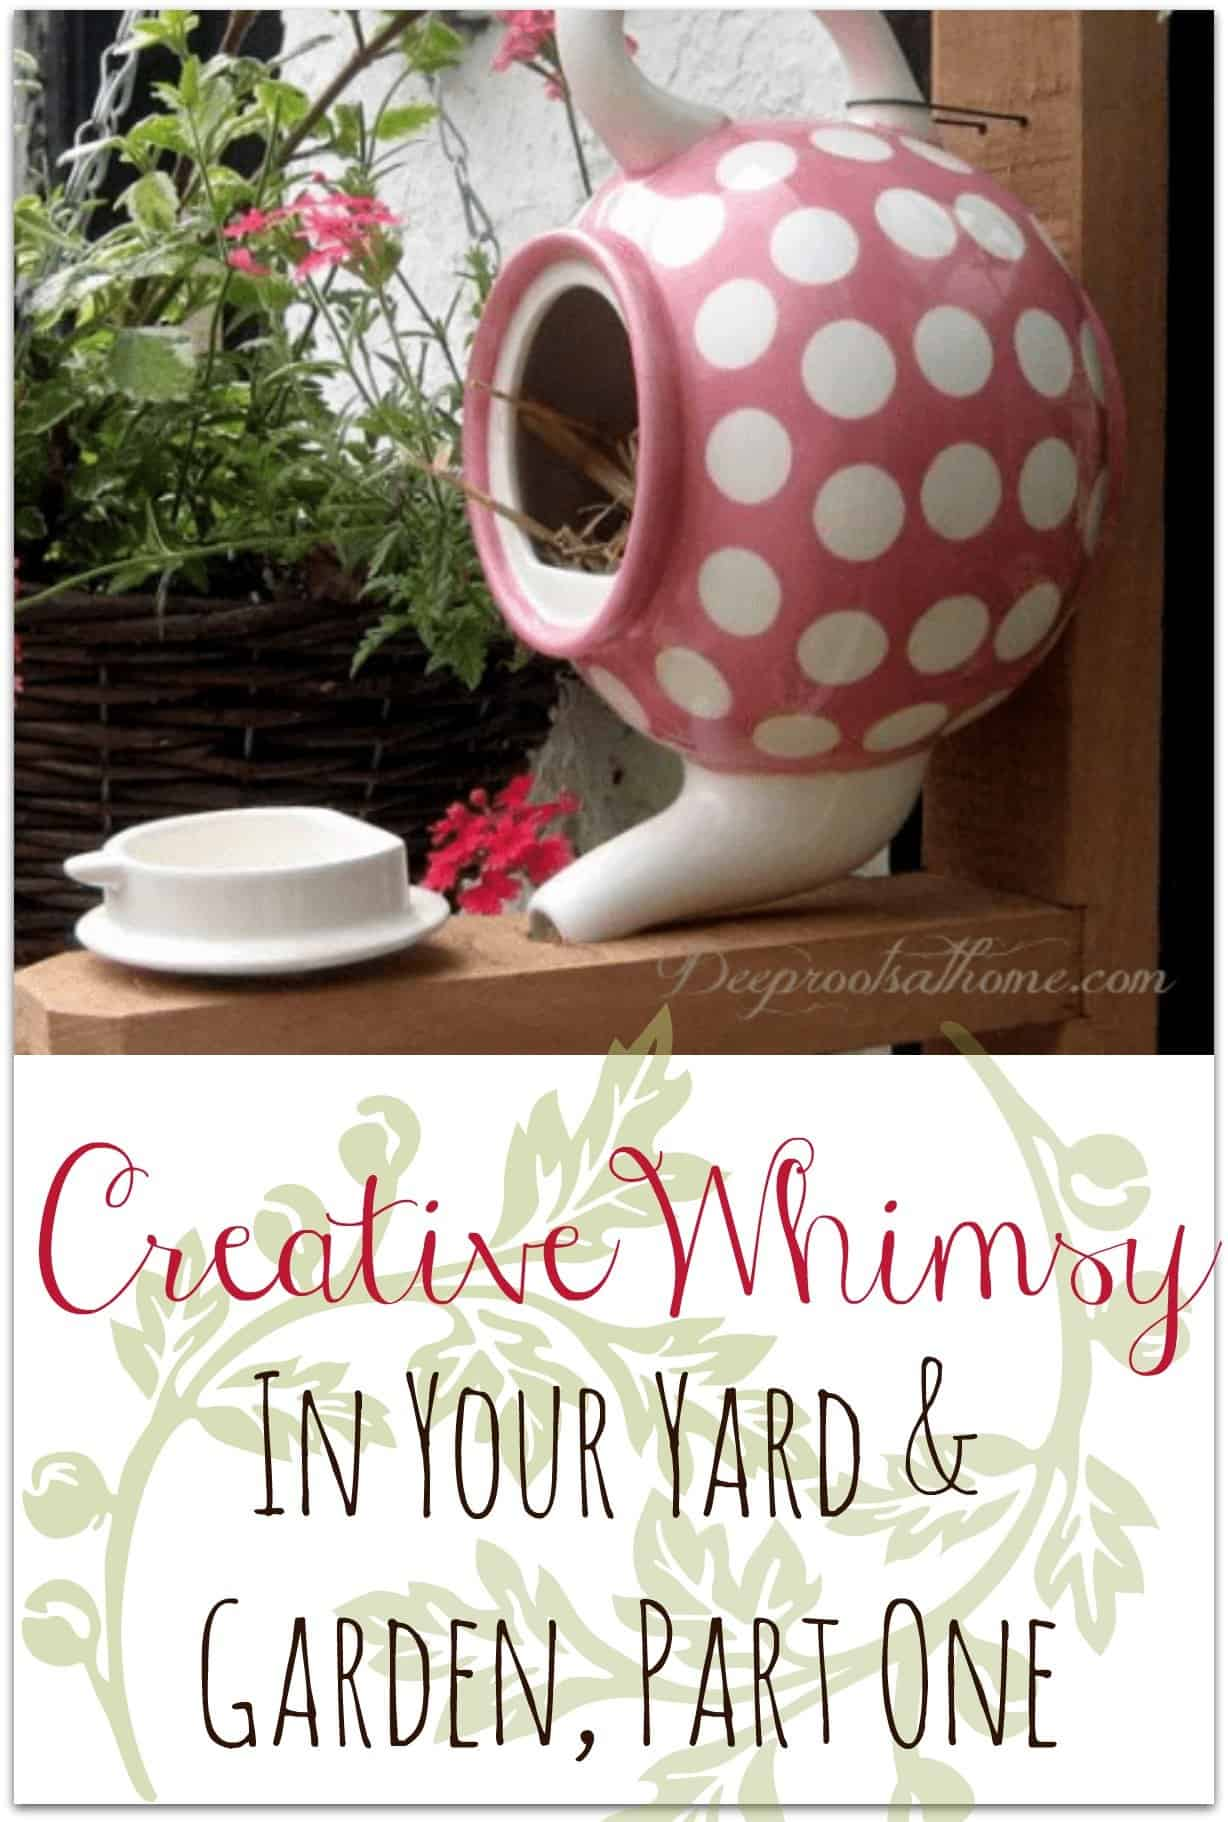 Creating Whimsy In Your Backyard & Garden, Part One. A homemade birdhouse out of a pink polka-dot teapot